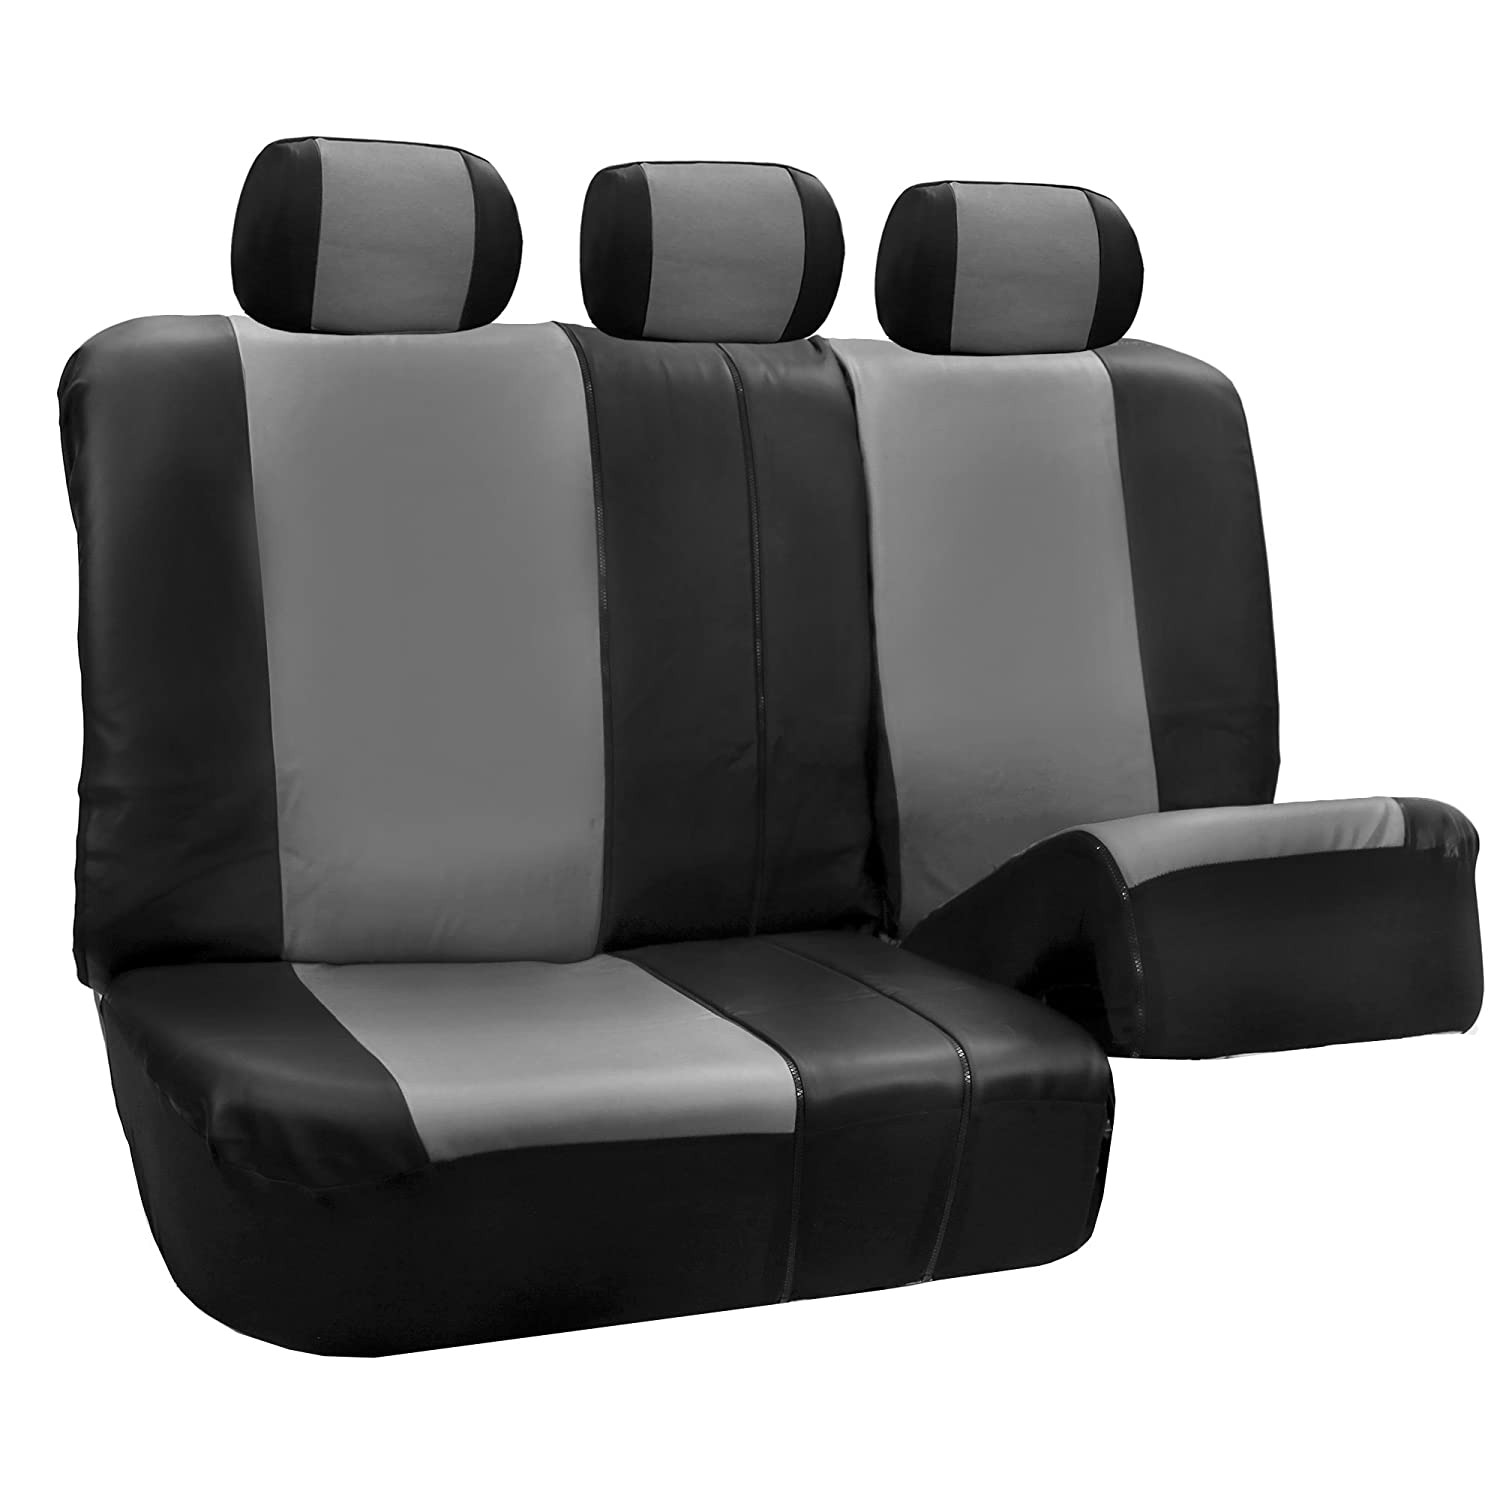 Truck or Van FH Group FH-PU003115 Racing PU Leather Car Full Set Tangerine//Black Seat Covers FREE FH1002 Non-Slip Dash Pad- Fit Most Car Suv Airbag Ready and Split w